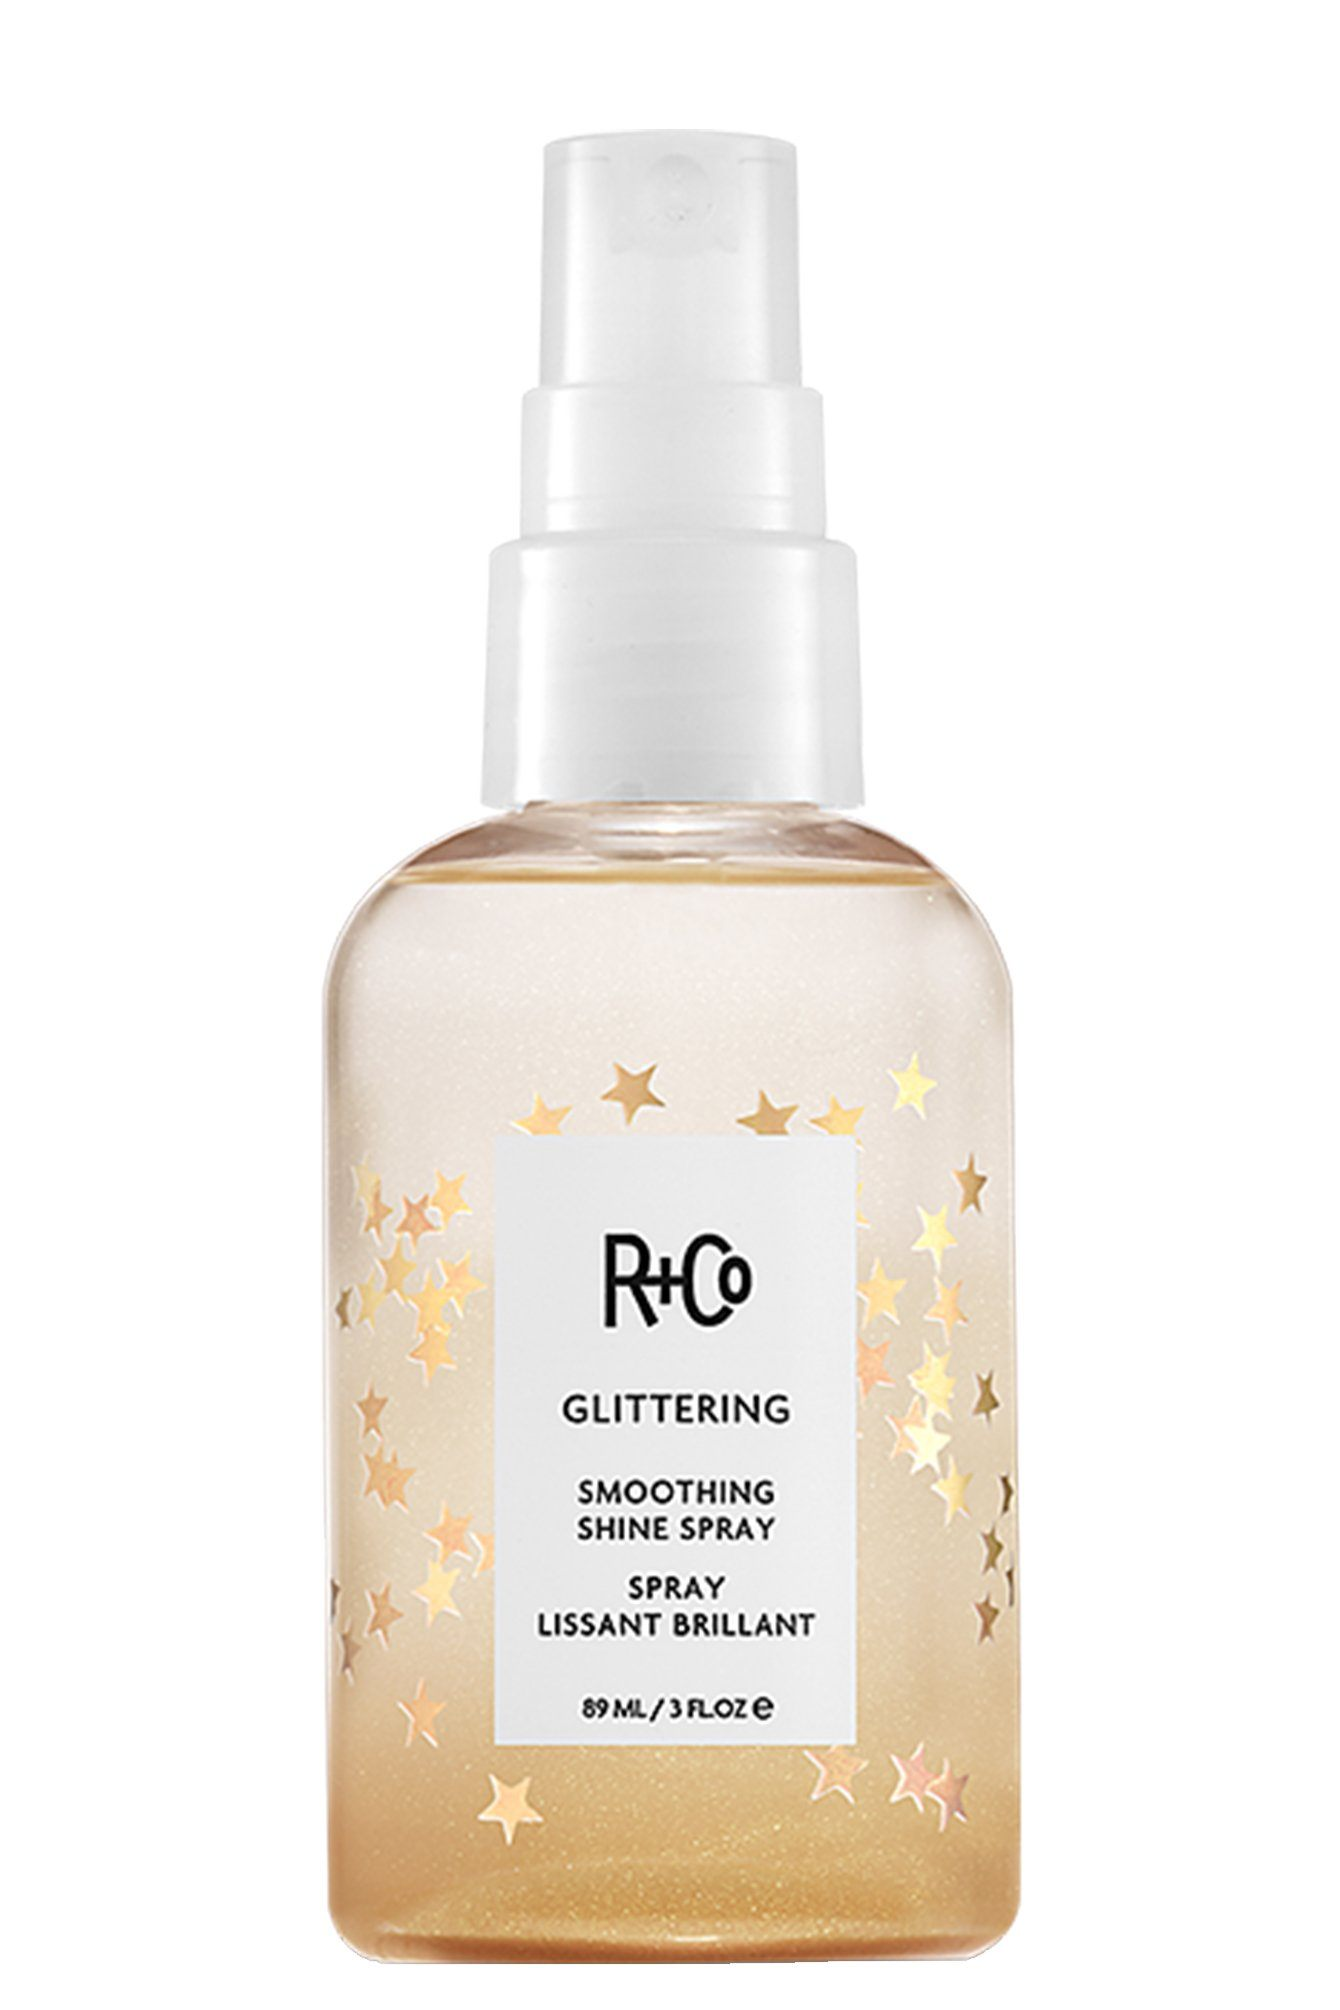 R+Co | Glittering Smoothing Shine Spray